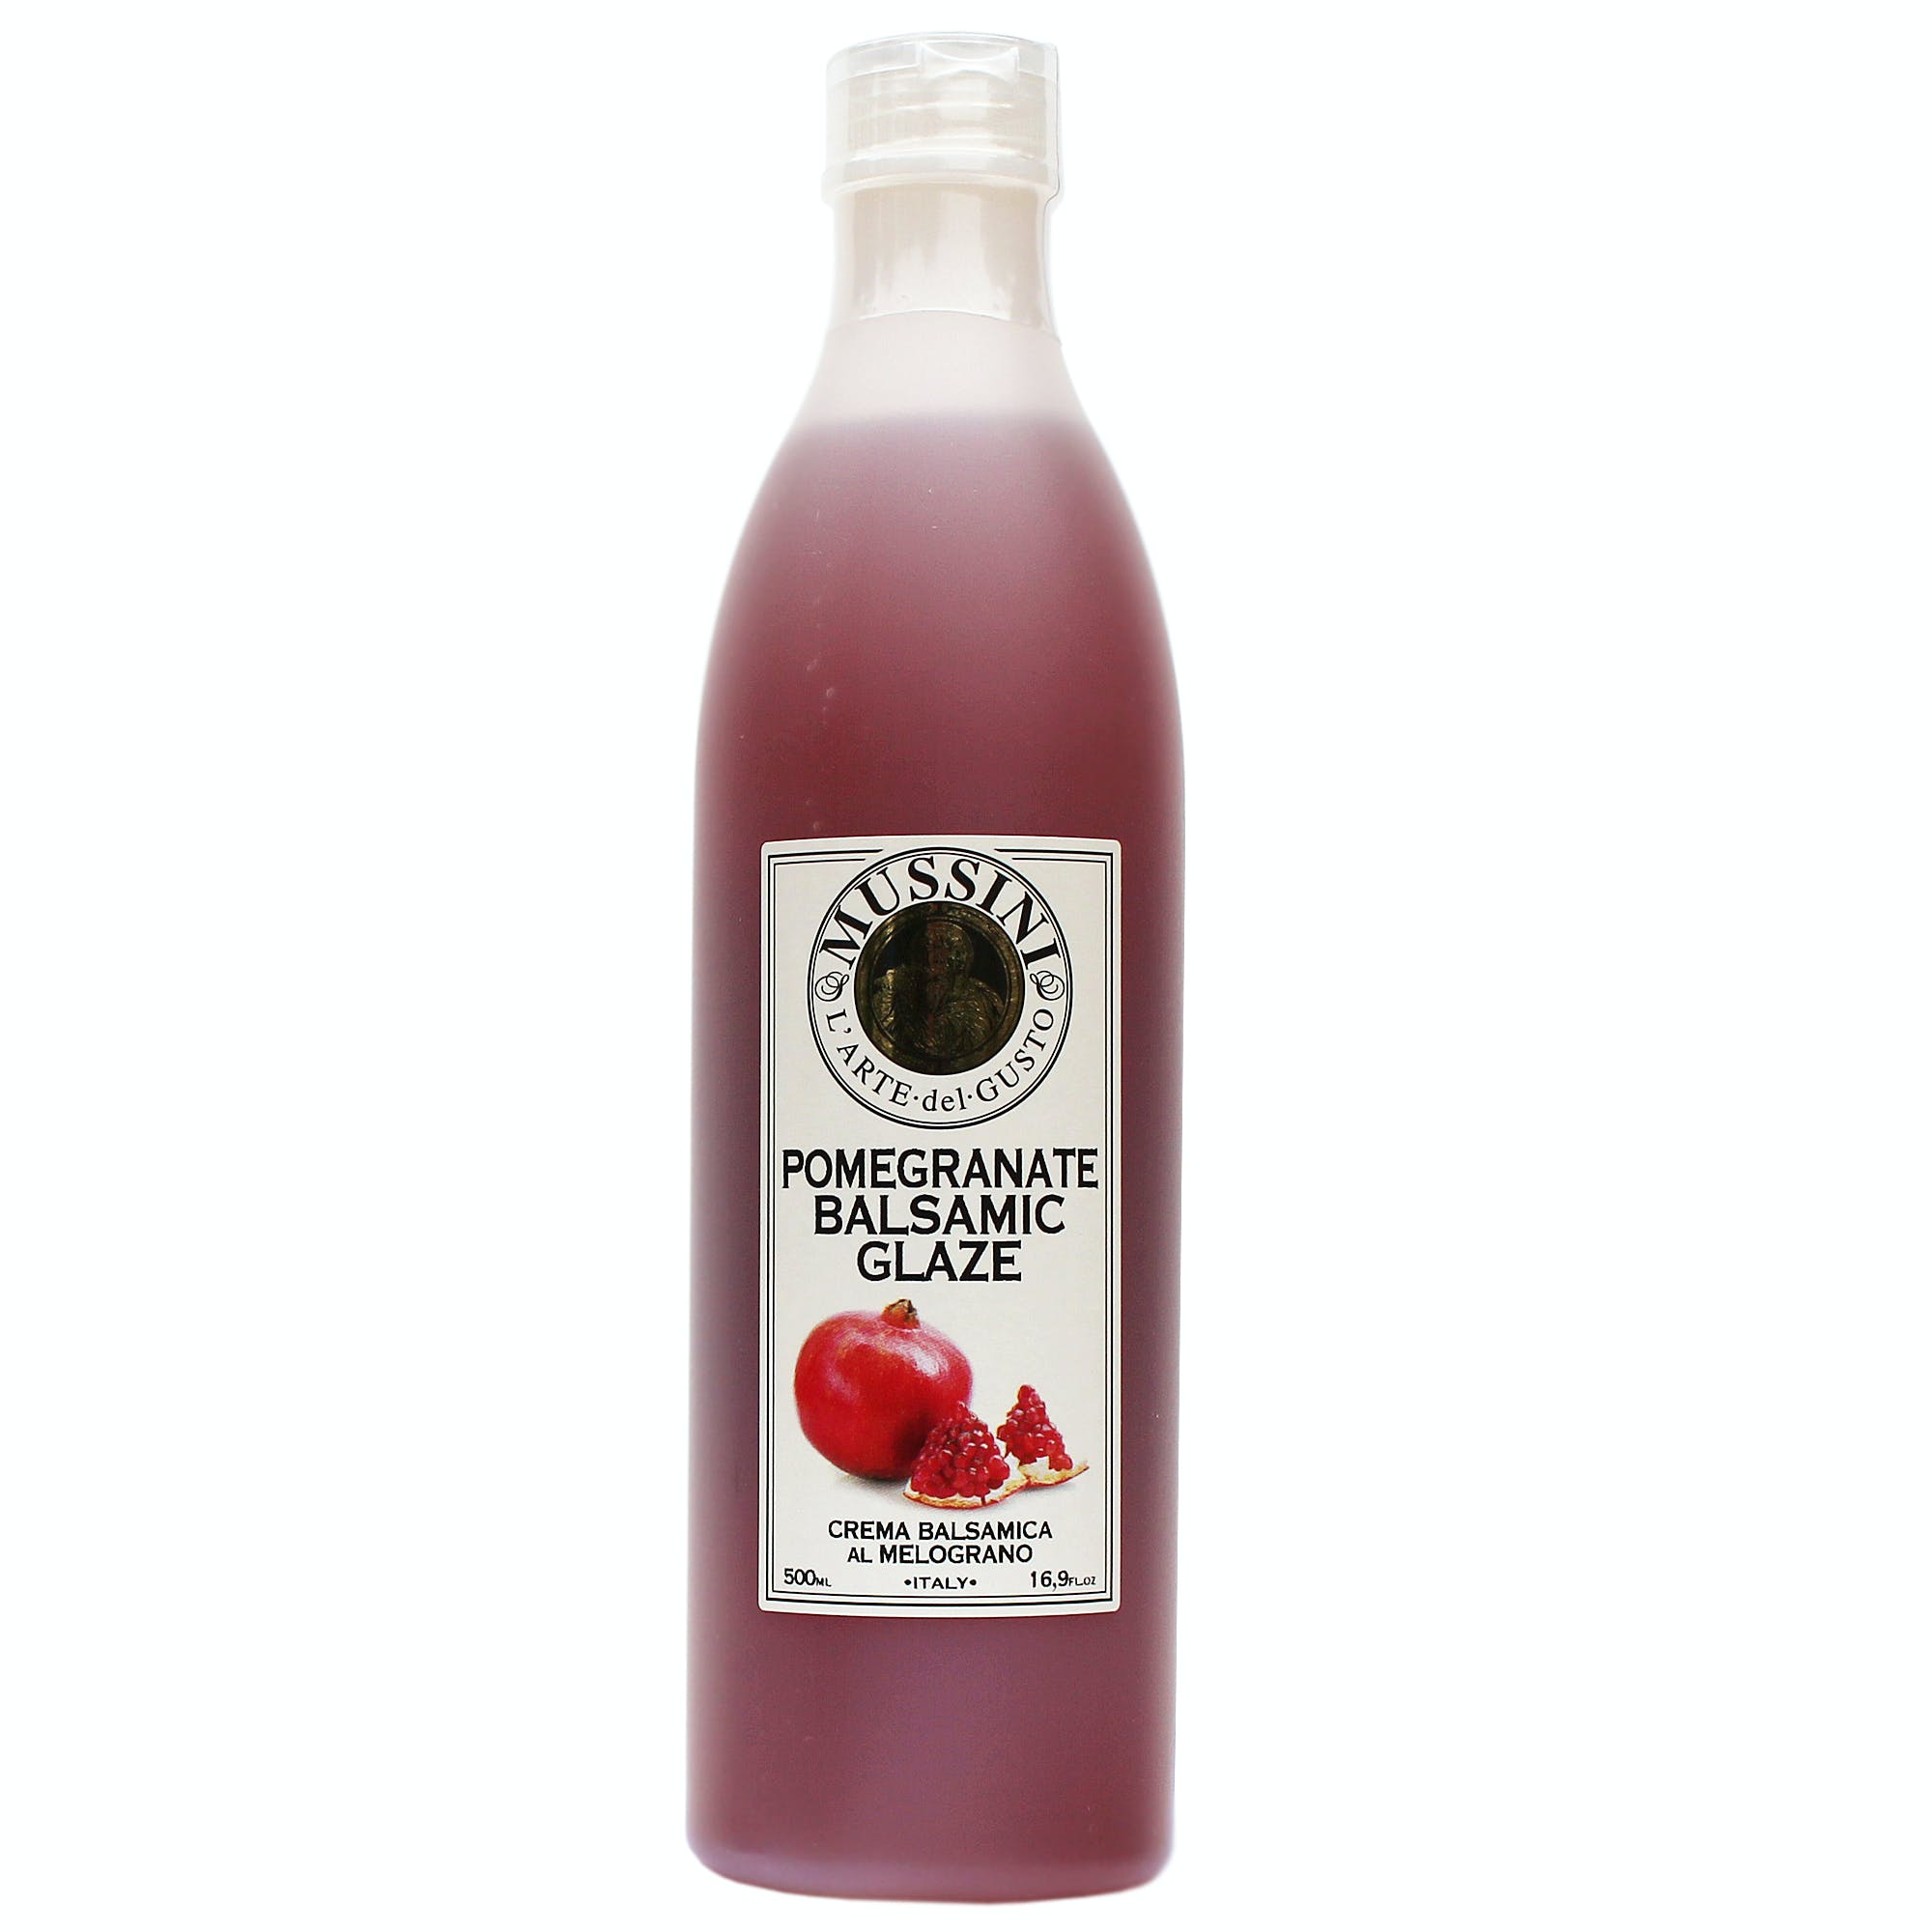 Italian Pomegranate Balsamic Glazes From Mussini, 16.9 Ounces Balsamic Vinegar sold by M5 Corporation